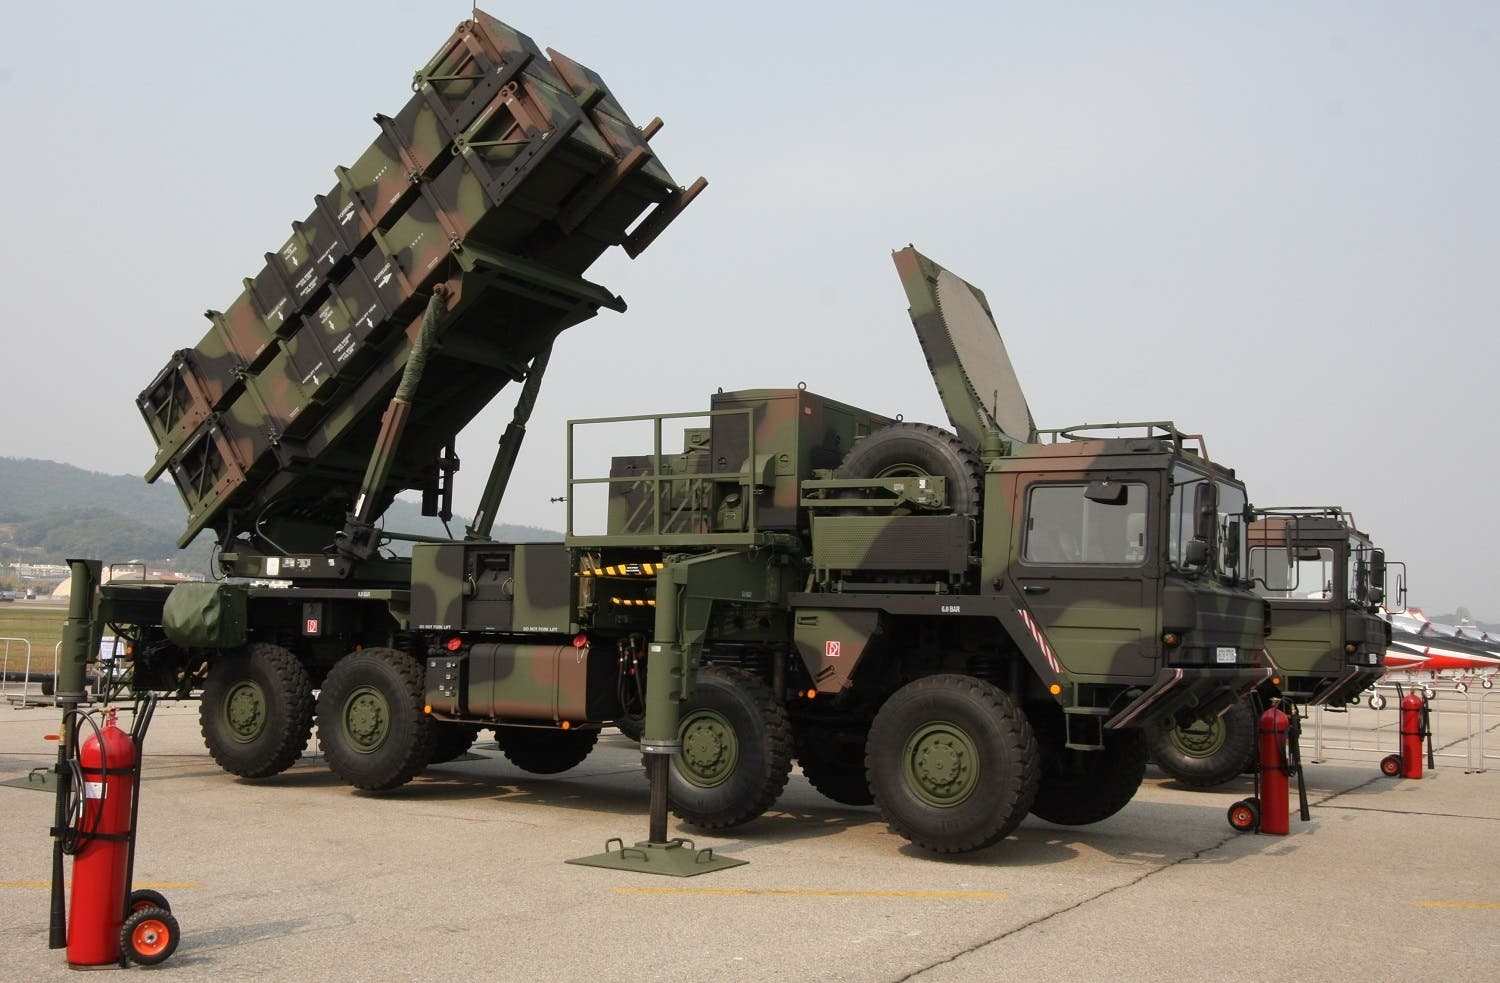 Saudi  Foreign Minister Adel al-Jubeir said that the Trump administration has taken steps to advance the sale of Raytheon Co precision-guided missiles to the Kingdom. (Shutterstock)